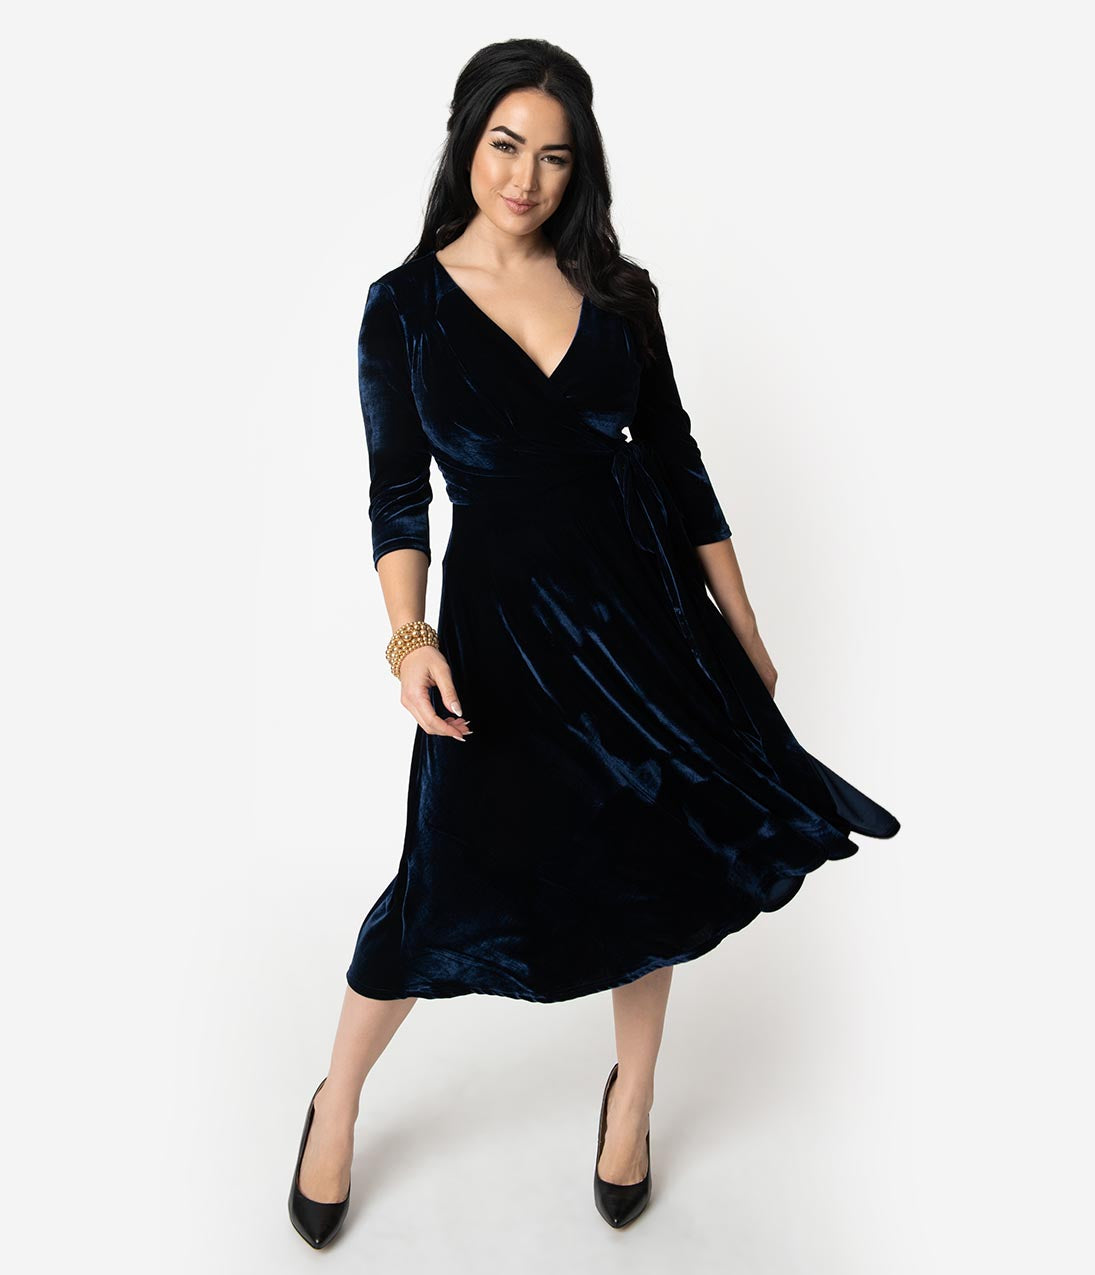 1940s Cocktail Dresses, Party Dresses Unique Vintage 1940S Style Navy Blue Velvet Kelsie Wrap Dress $98.00 AT vintagedancer.com